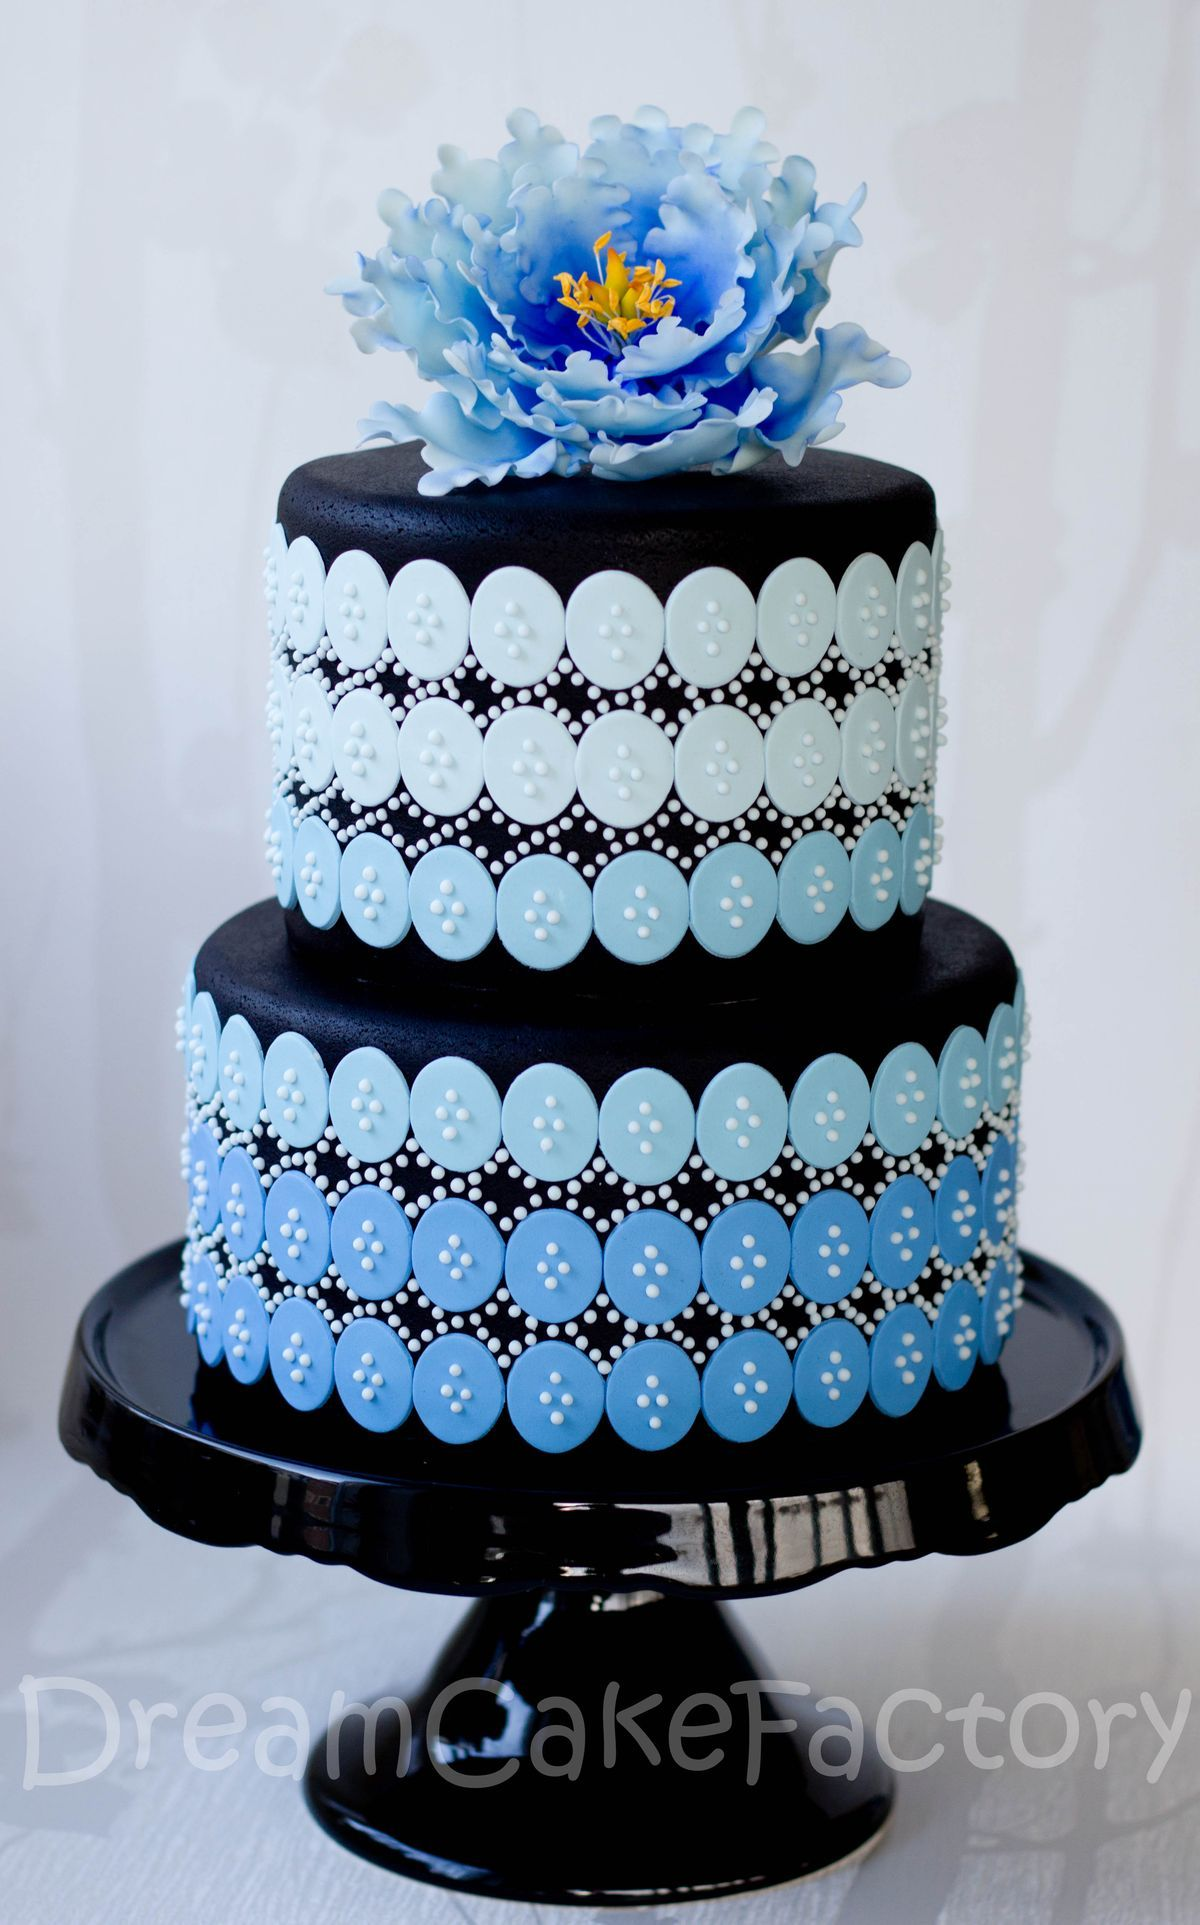 Blue and black wedding decor  Passion of cakes by Le Delizie di Amerilde  Cake Design Flowers and